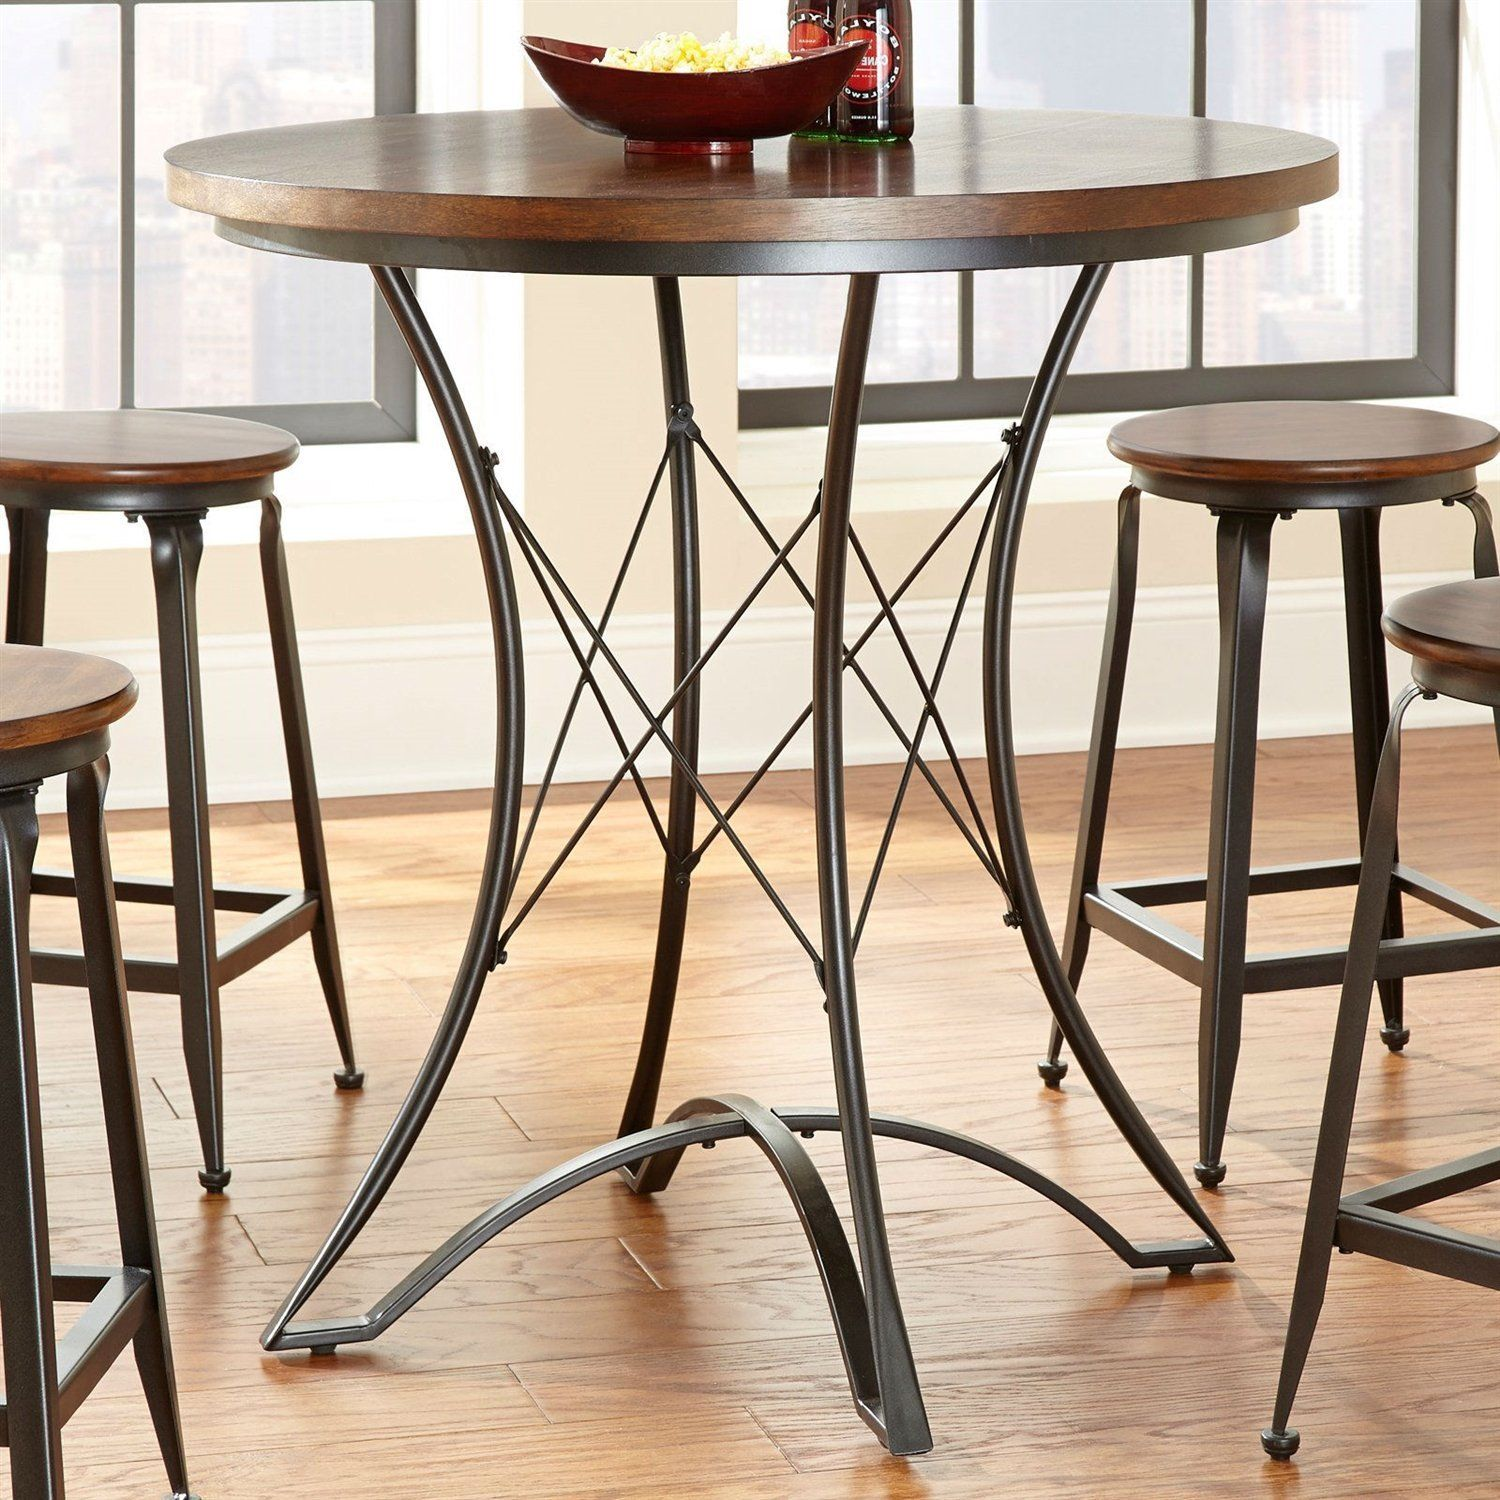 100 36 Inch Round Tables Cool Storage Furniture Check More At Http Livelyl Round Extension Dining Table Round Dining Room Sets Round Pedestal Dining Table